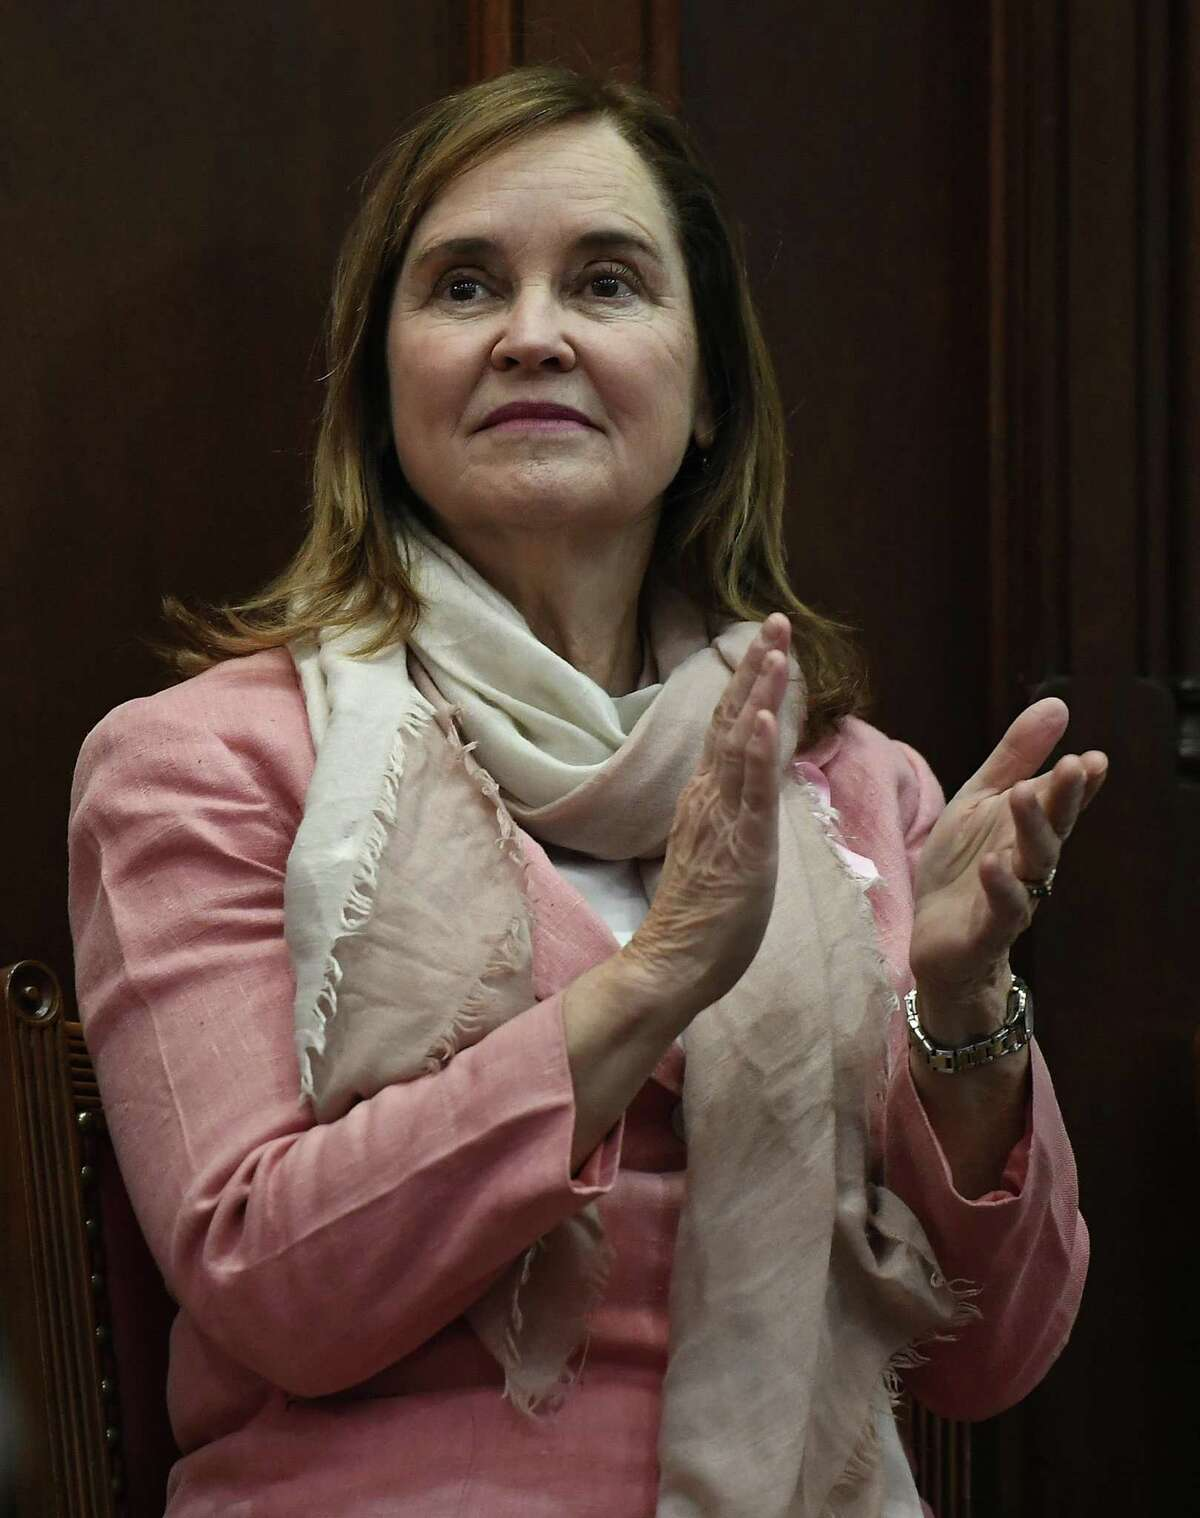 Secretary of the State Denise W. Merrill during opening session at the state Capitol, Wednesday, Feb. 7, 2018, in Hartford, Conn. (AP Photo/Jessica Hill)